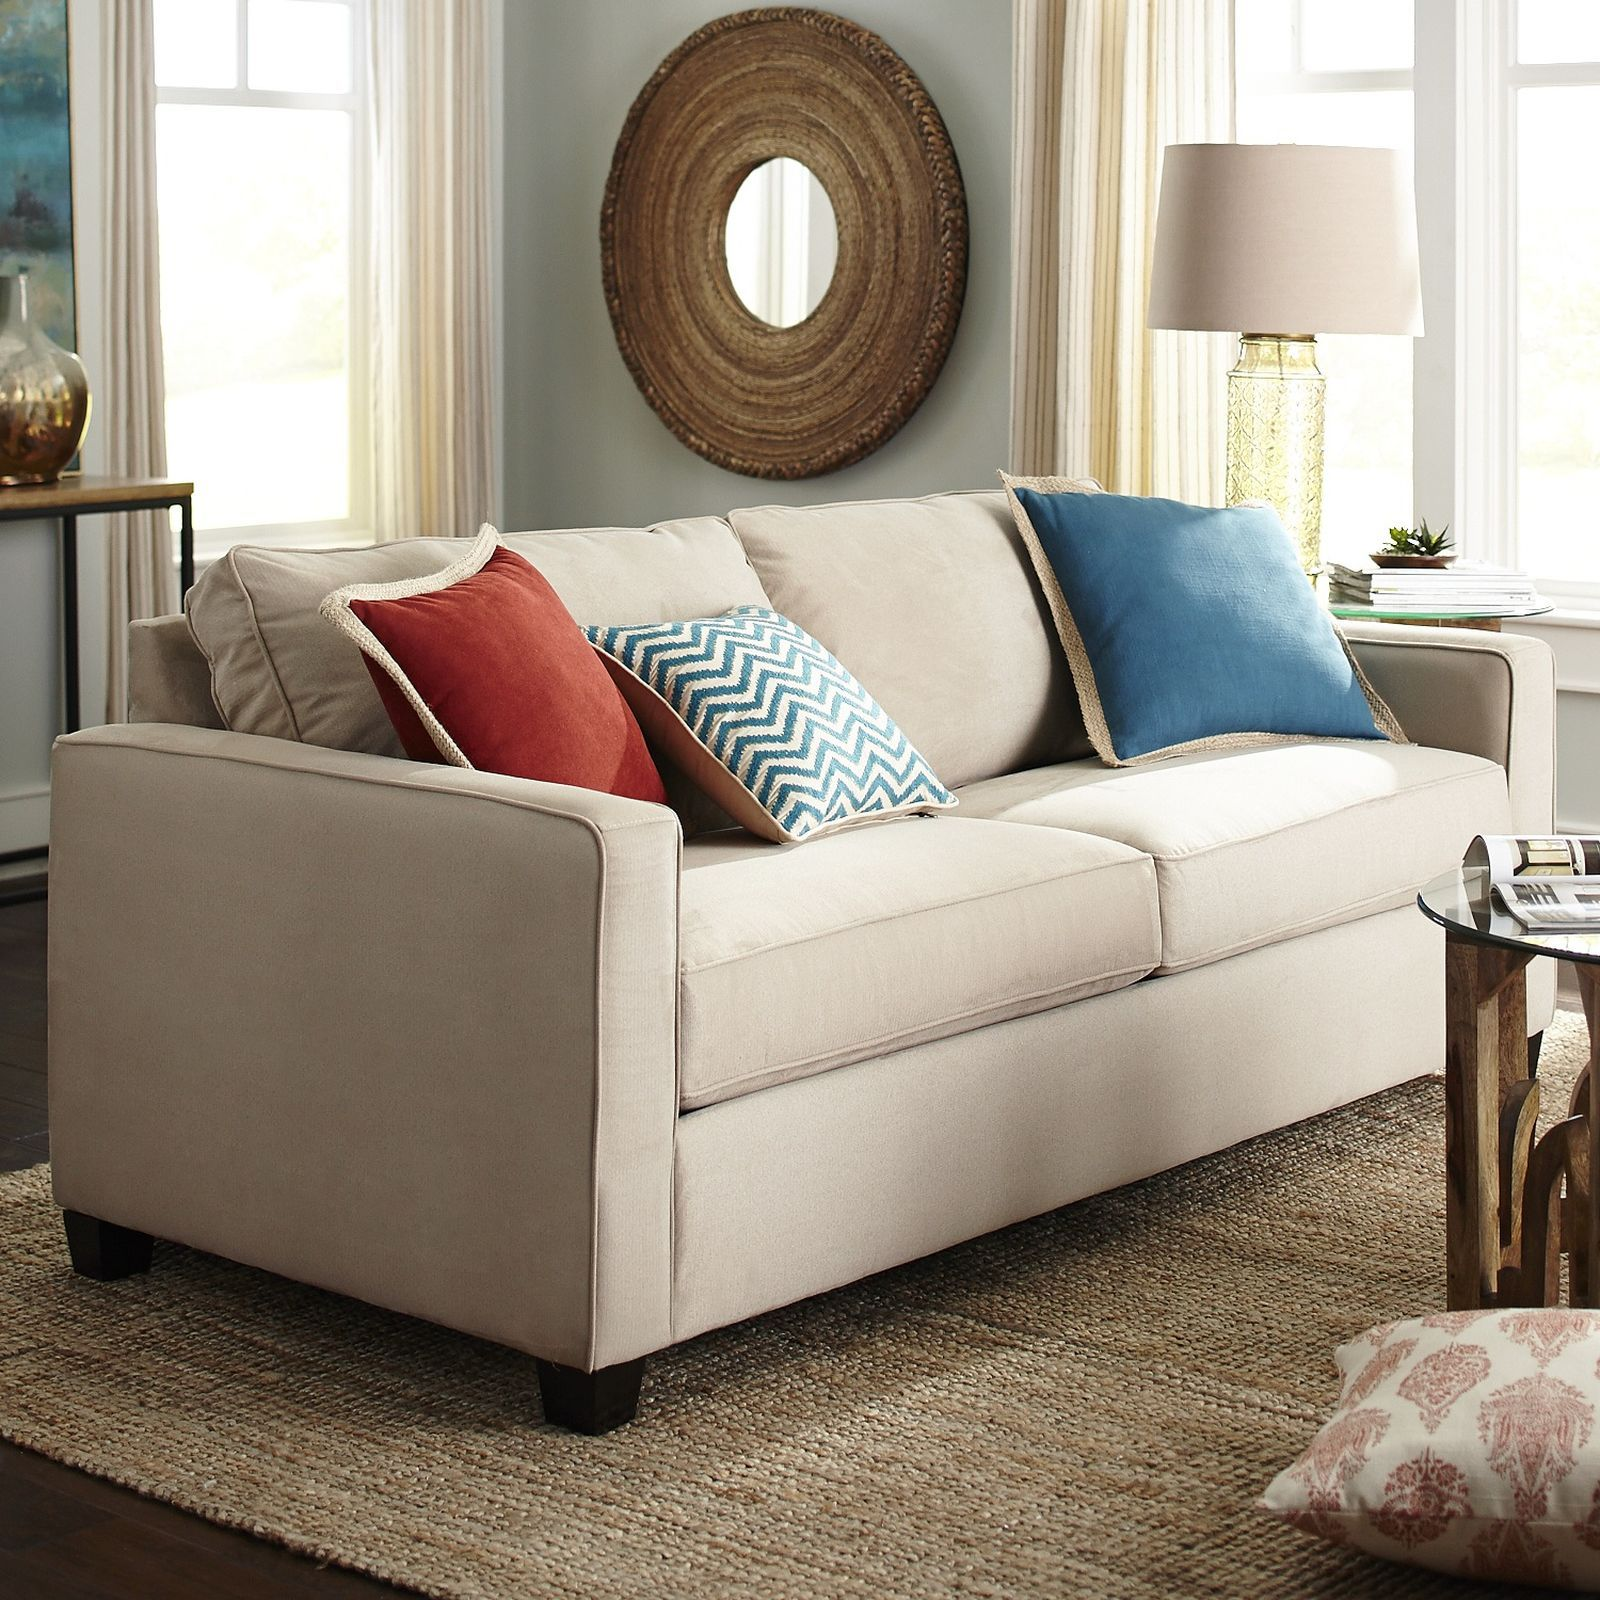 Alton Ecru Track Arm Sleeper Sofa